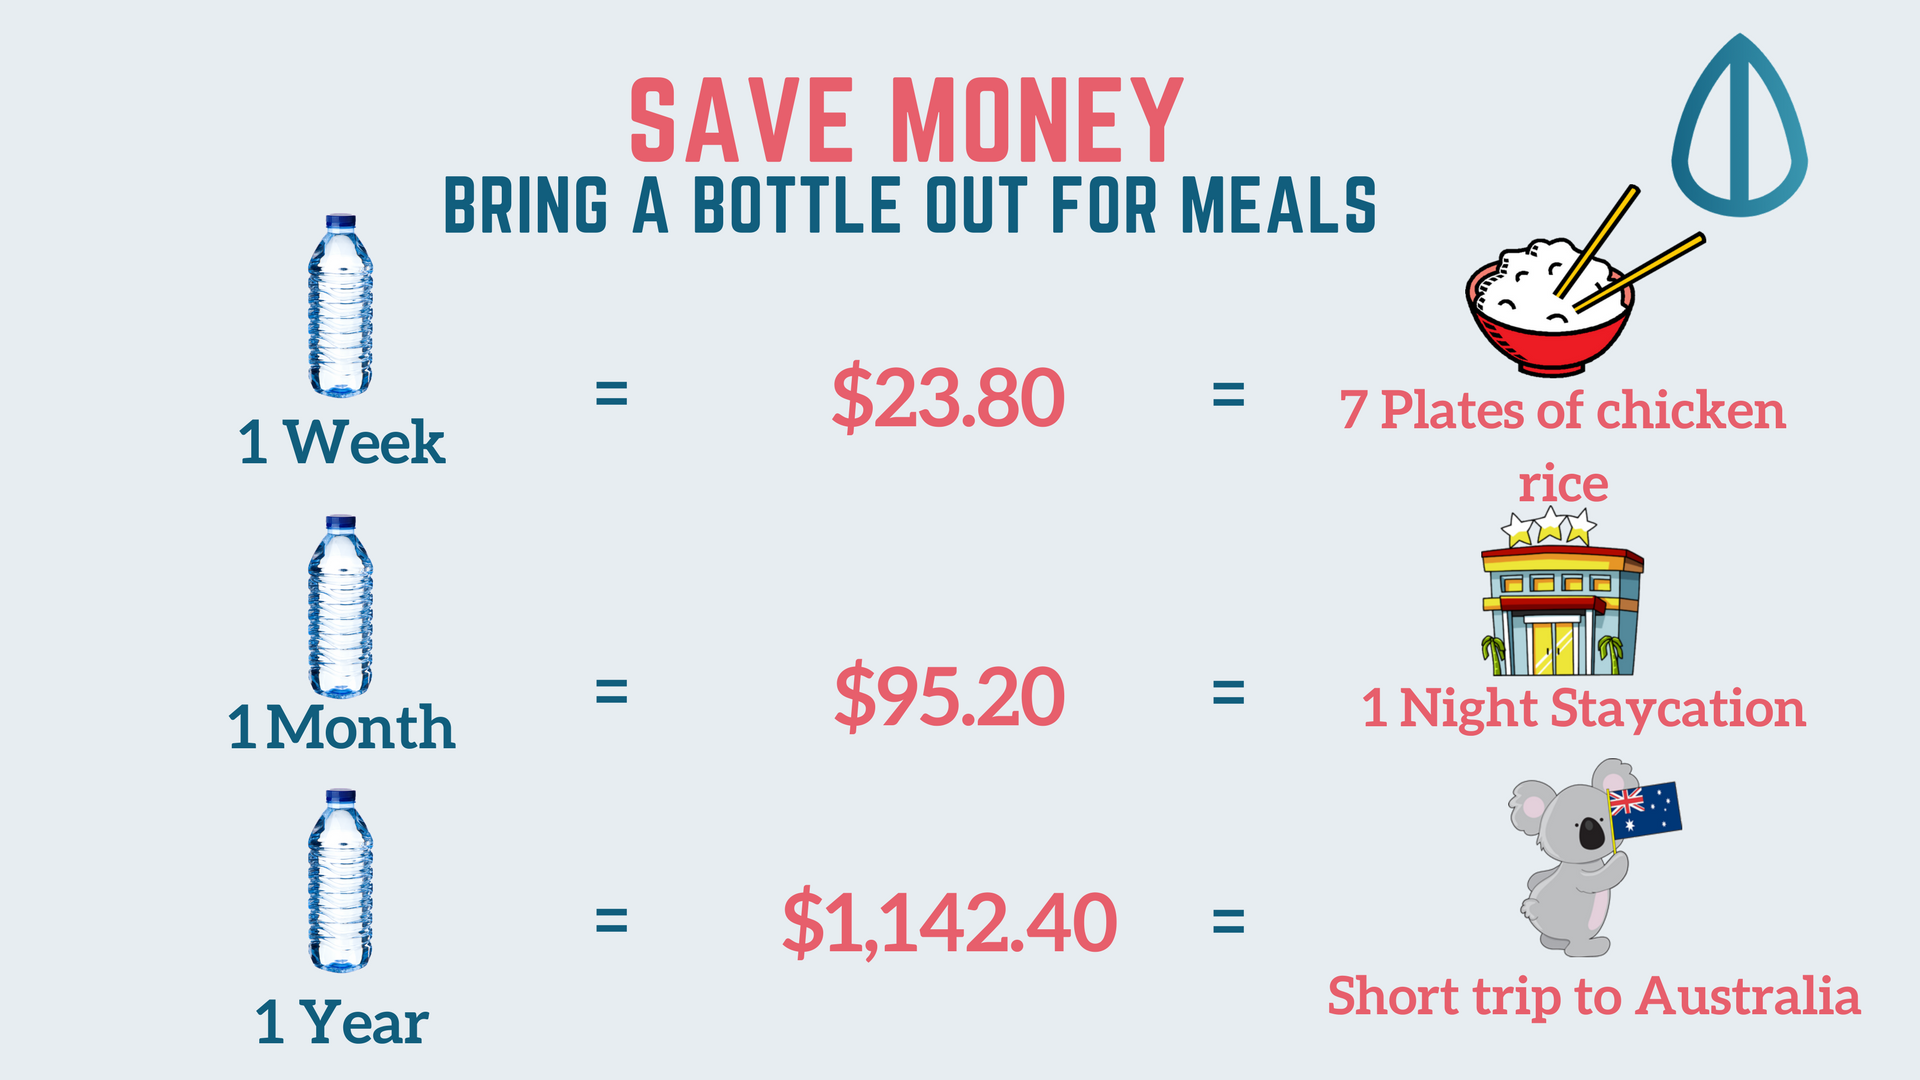 How Much You Can Save By Bringing A Bottle Out For Meals